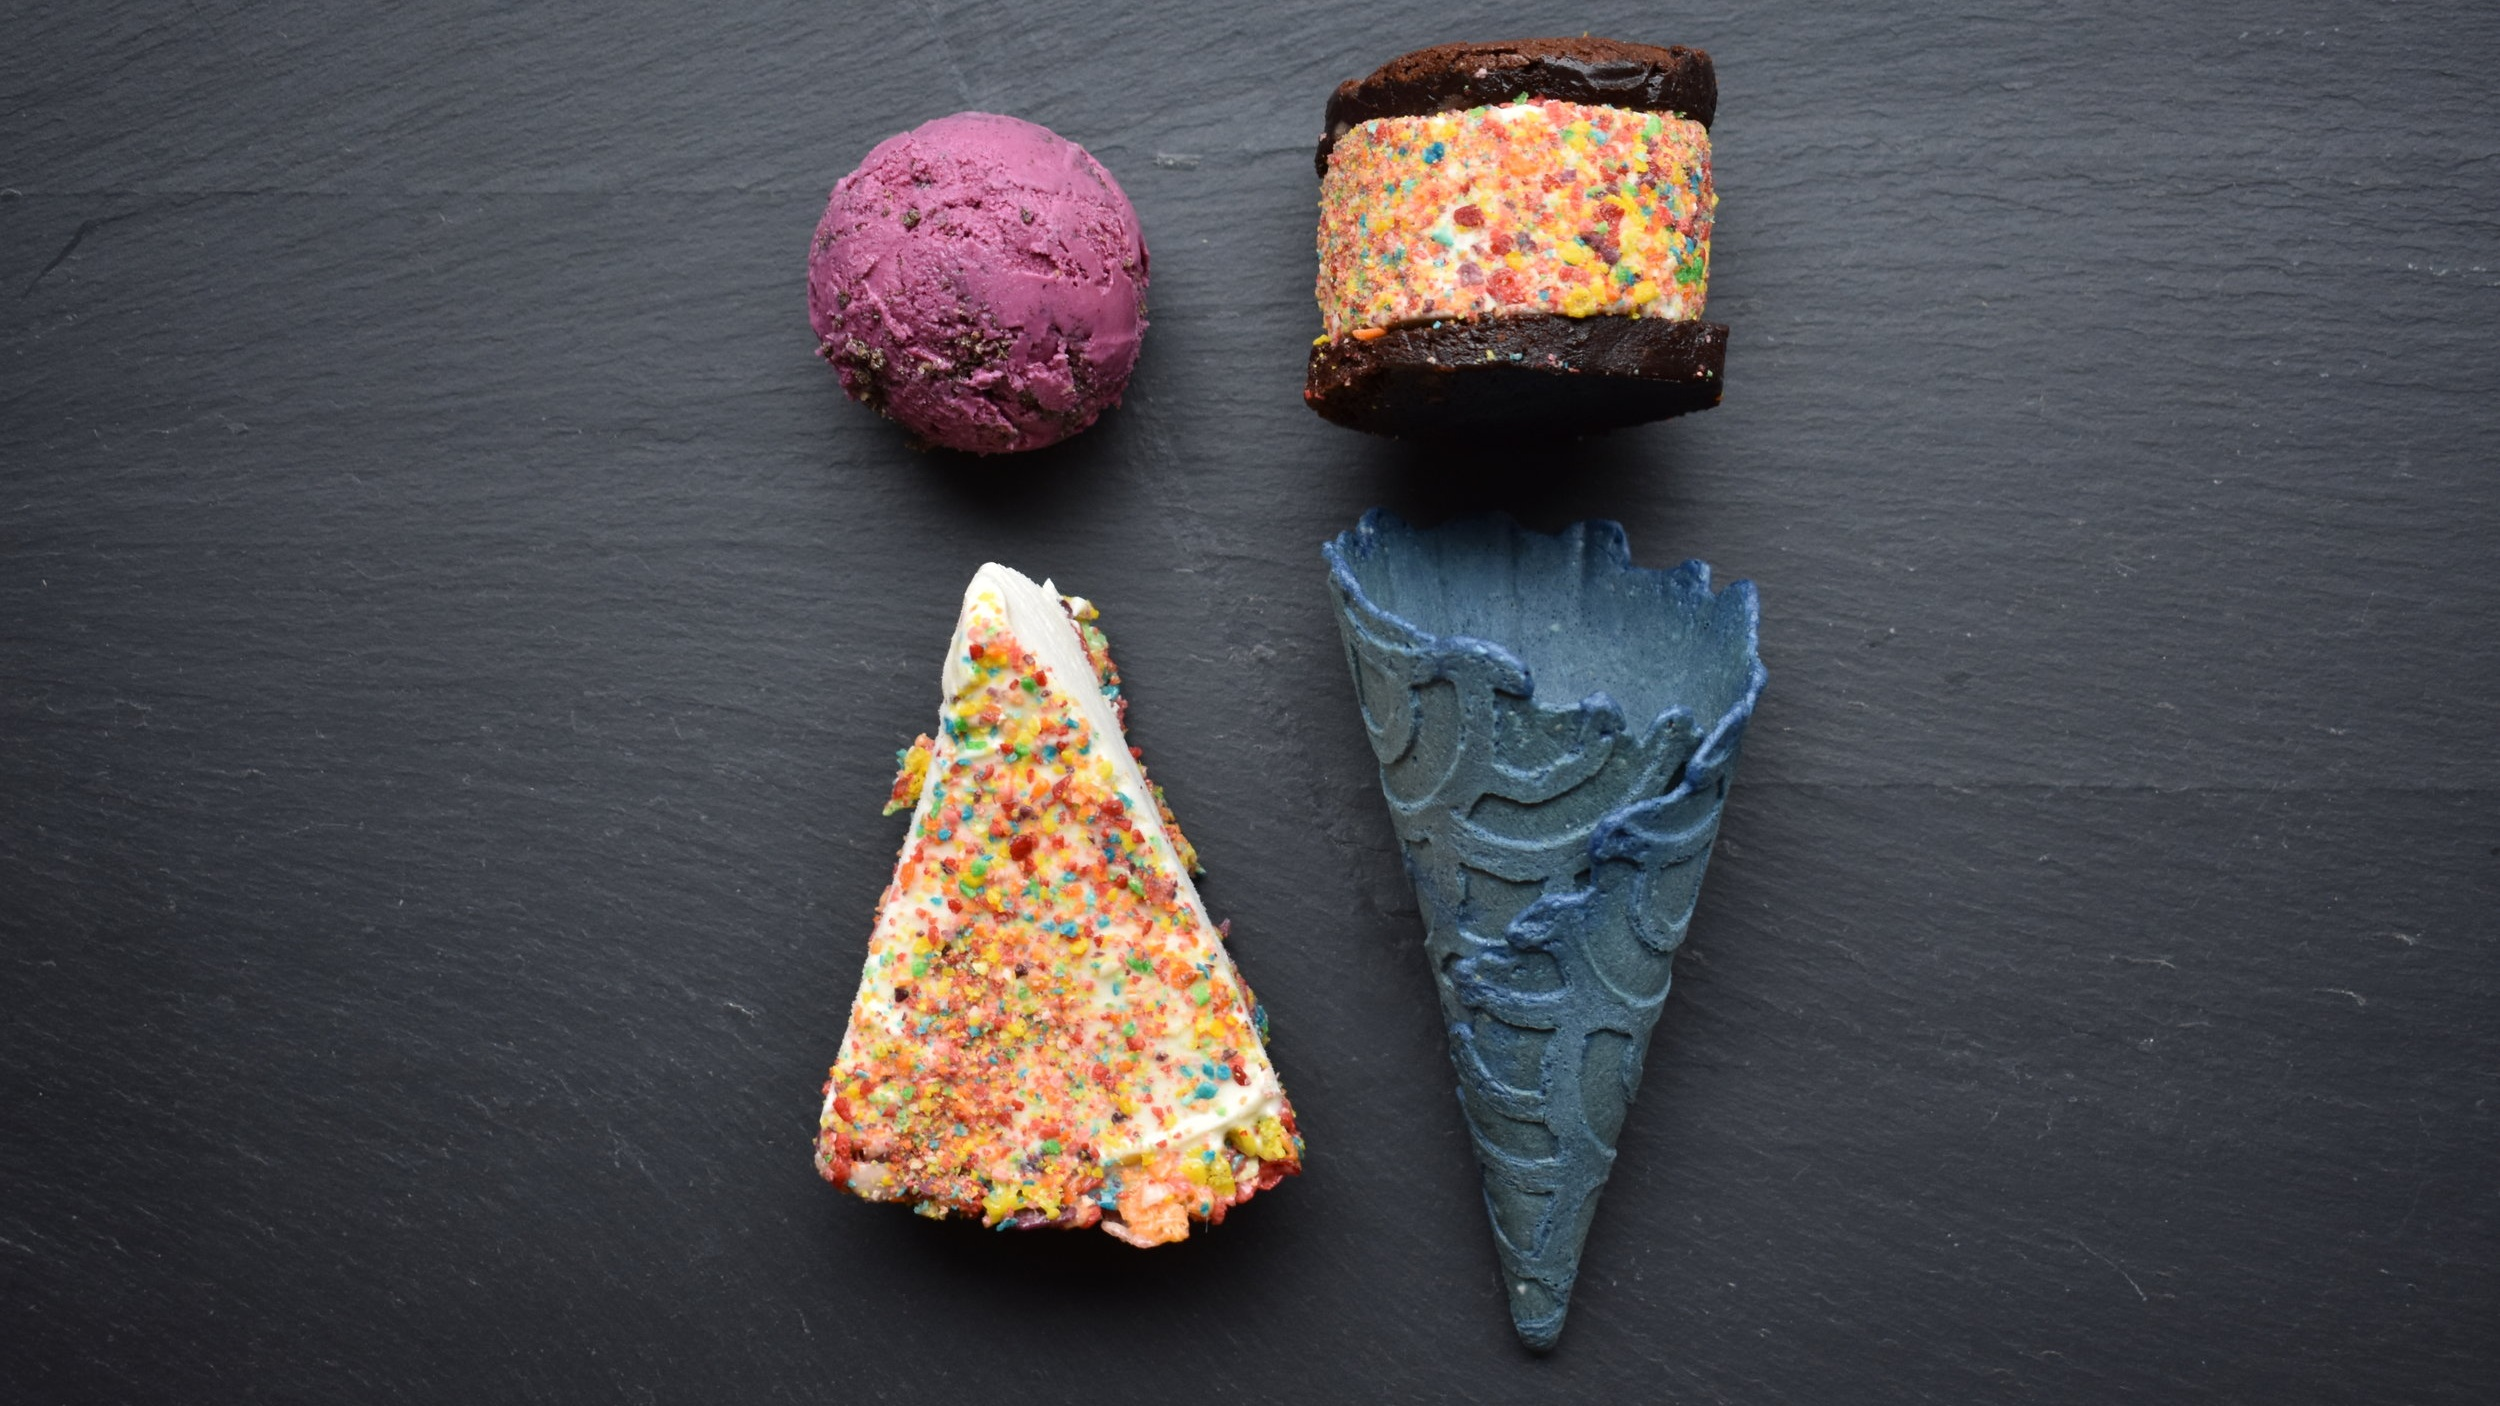 NYC best ice cream frozen dessert shops